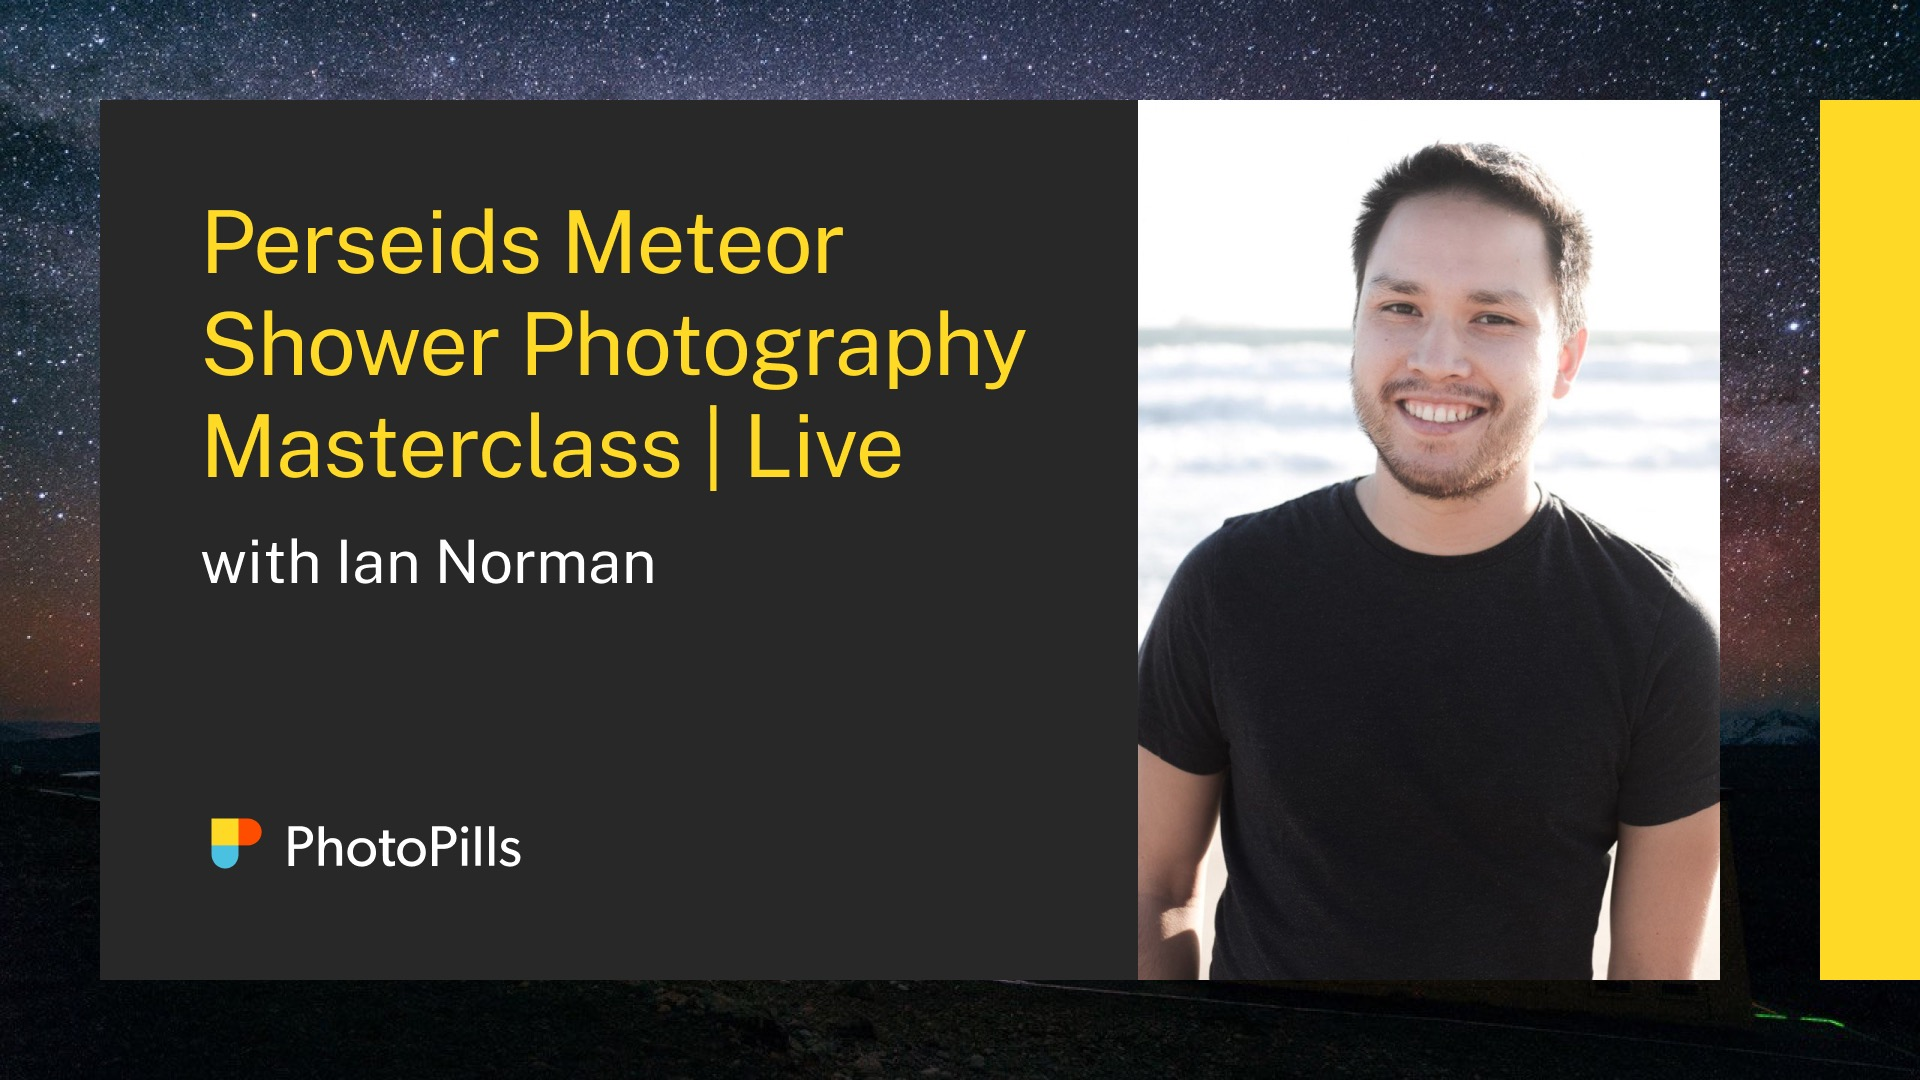 Perseids Meteor Shower Photography Masterclass Live